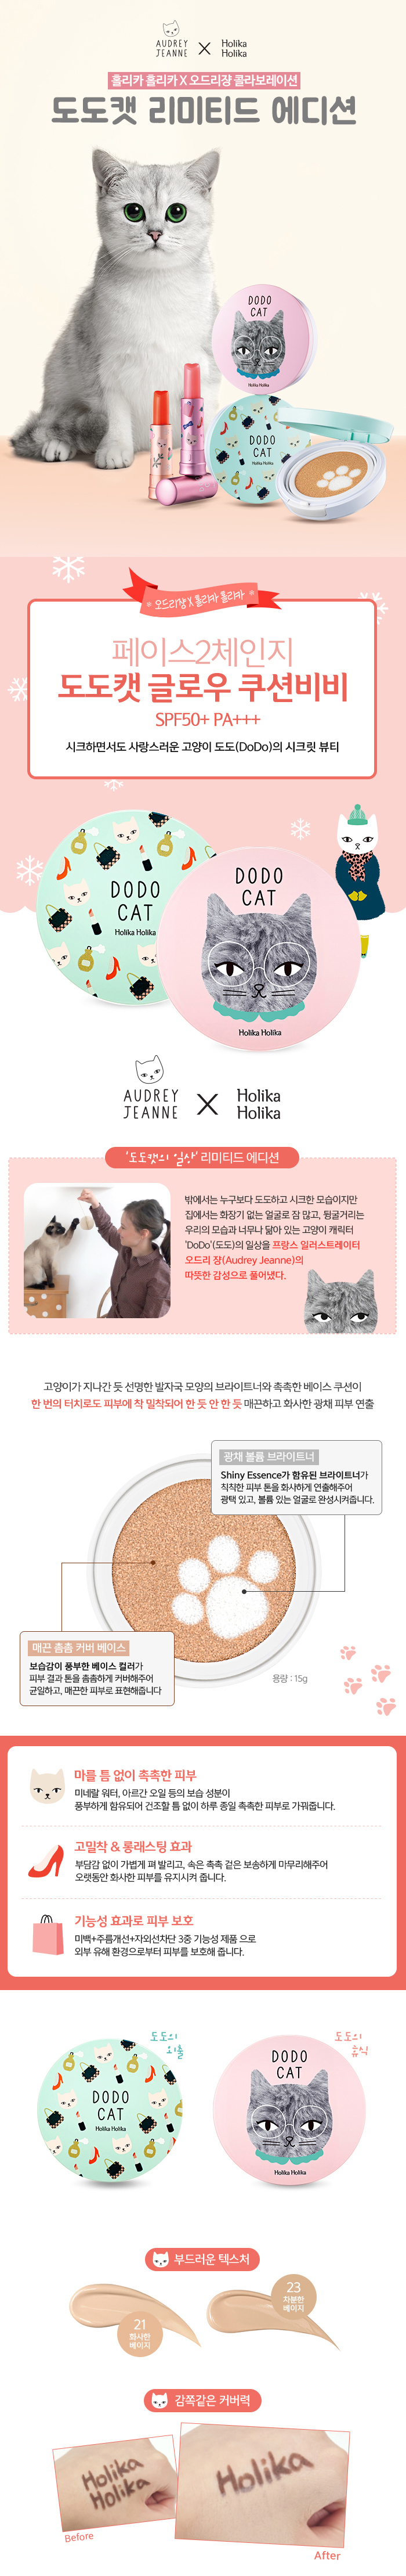 Holika Holika Face2Change Dodo Cat Glow Cushion (info - kr)